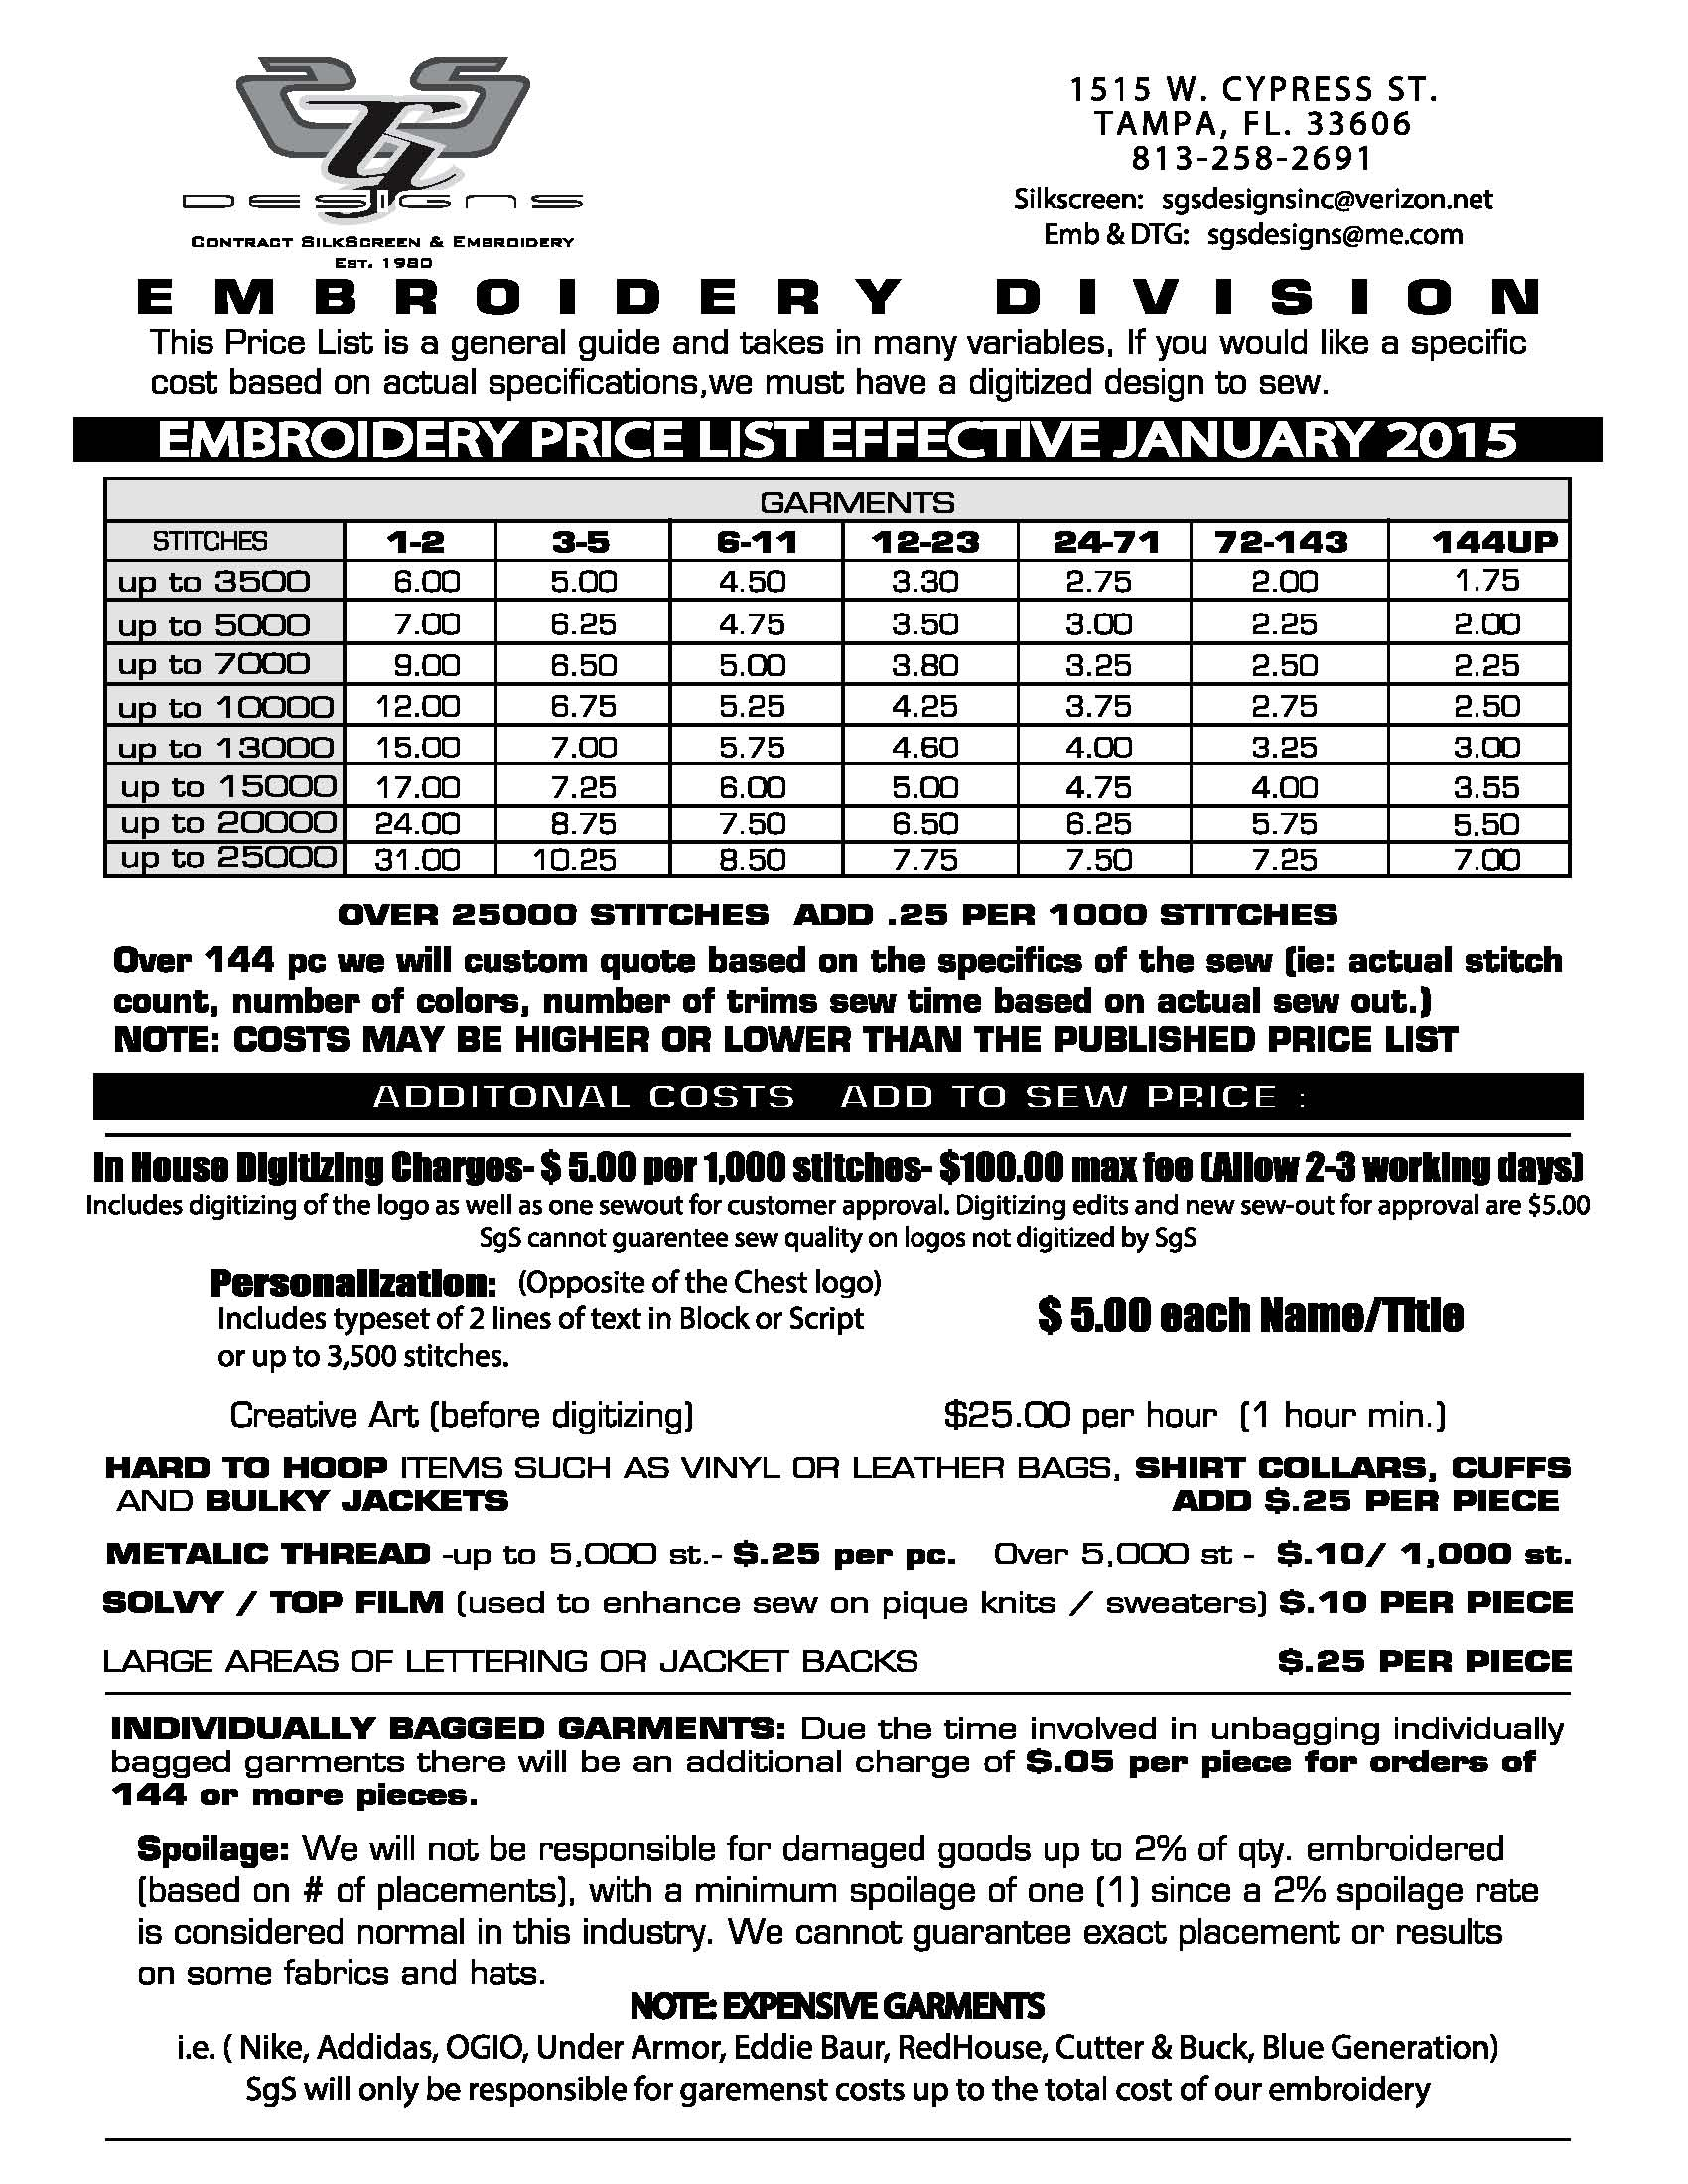 Embroidery price sheet - Embroidery Sgsdesignsinc